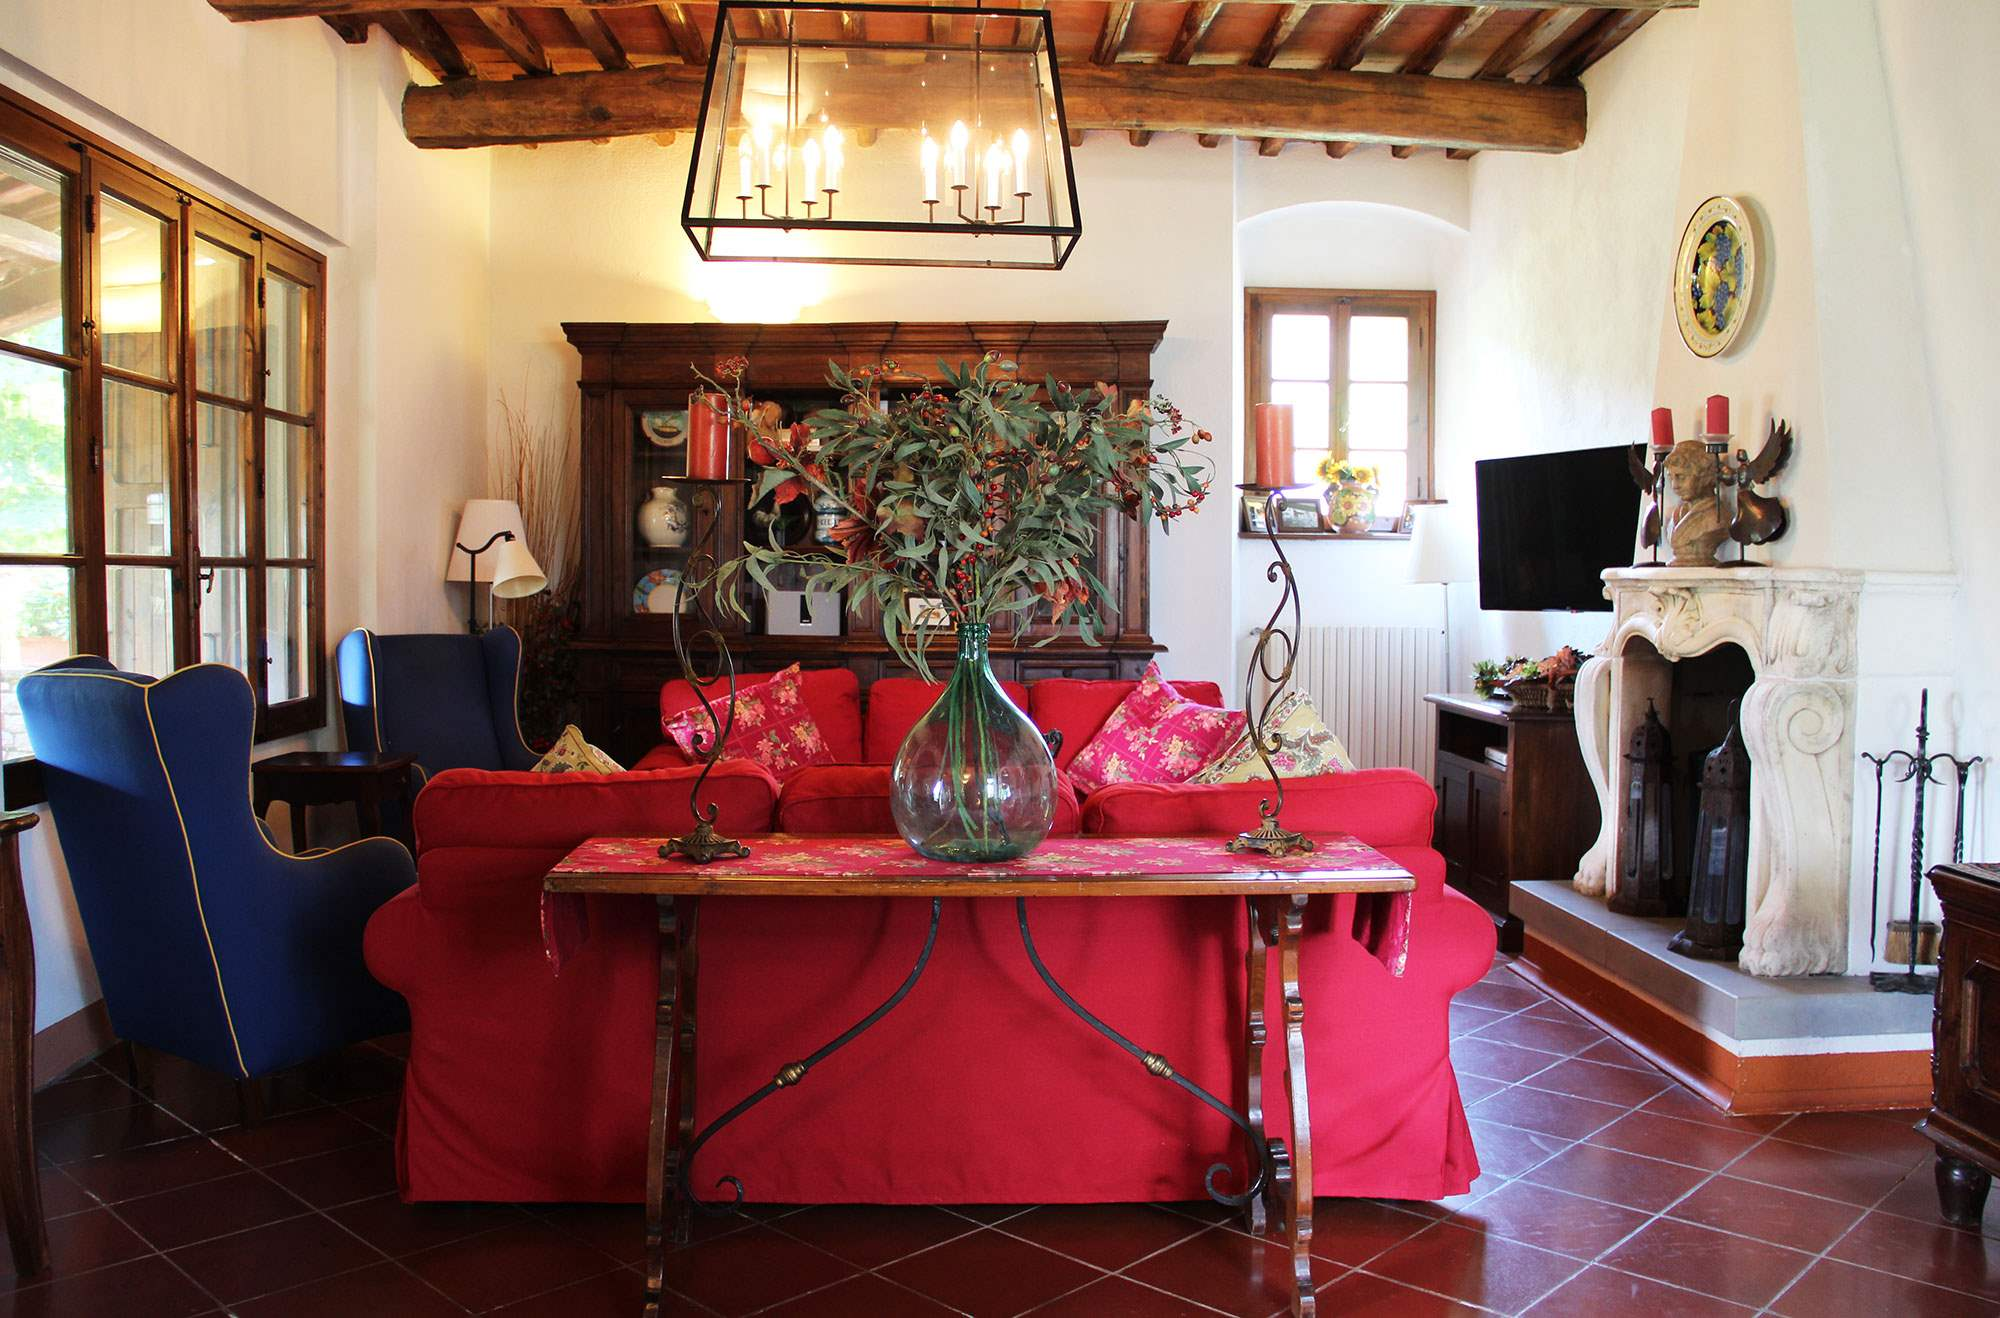 Villa Felicita, Main house only, 6 persons rate, 3 bedroom villa in Chianti & Countryside, Tuscany Photo #6